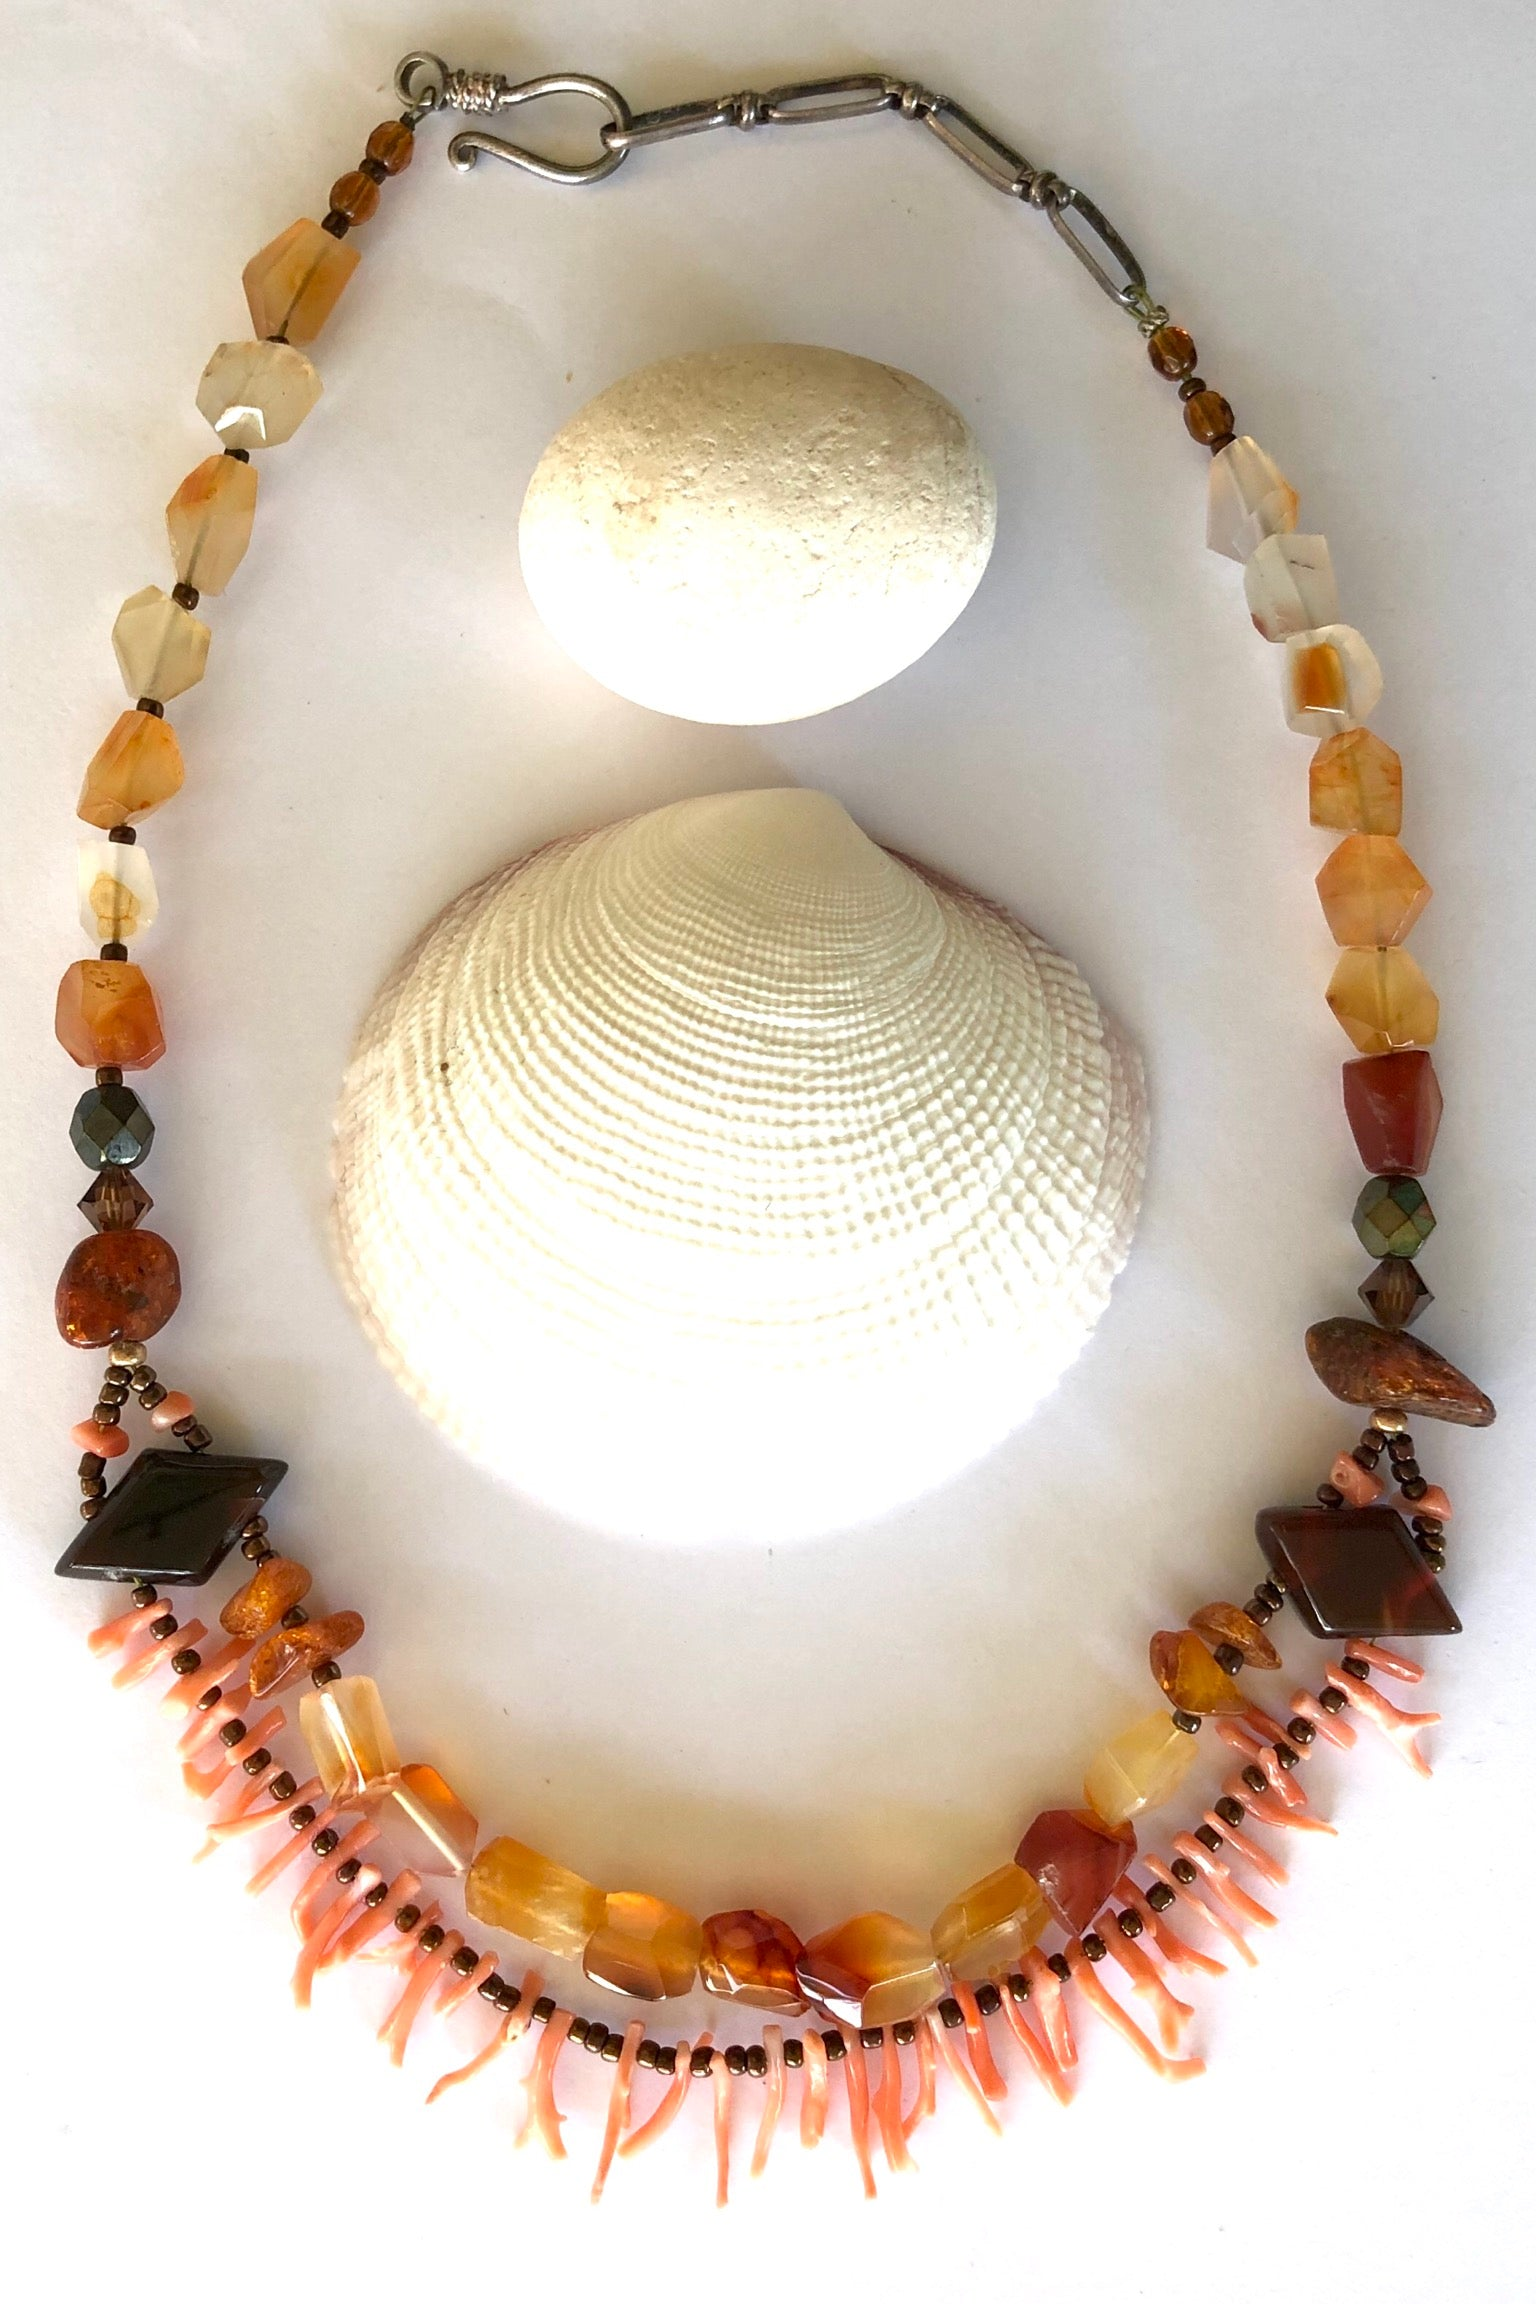 Necklace Cay Coral and Carnelian features beautiful village cut stones inculding Carnelian, Branch Coral, Amber and crystal beads.